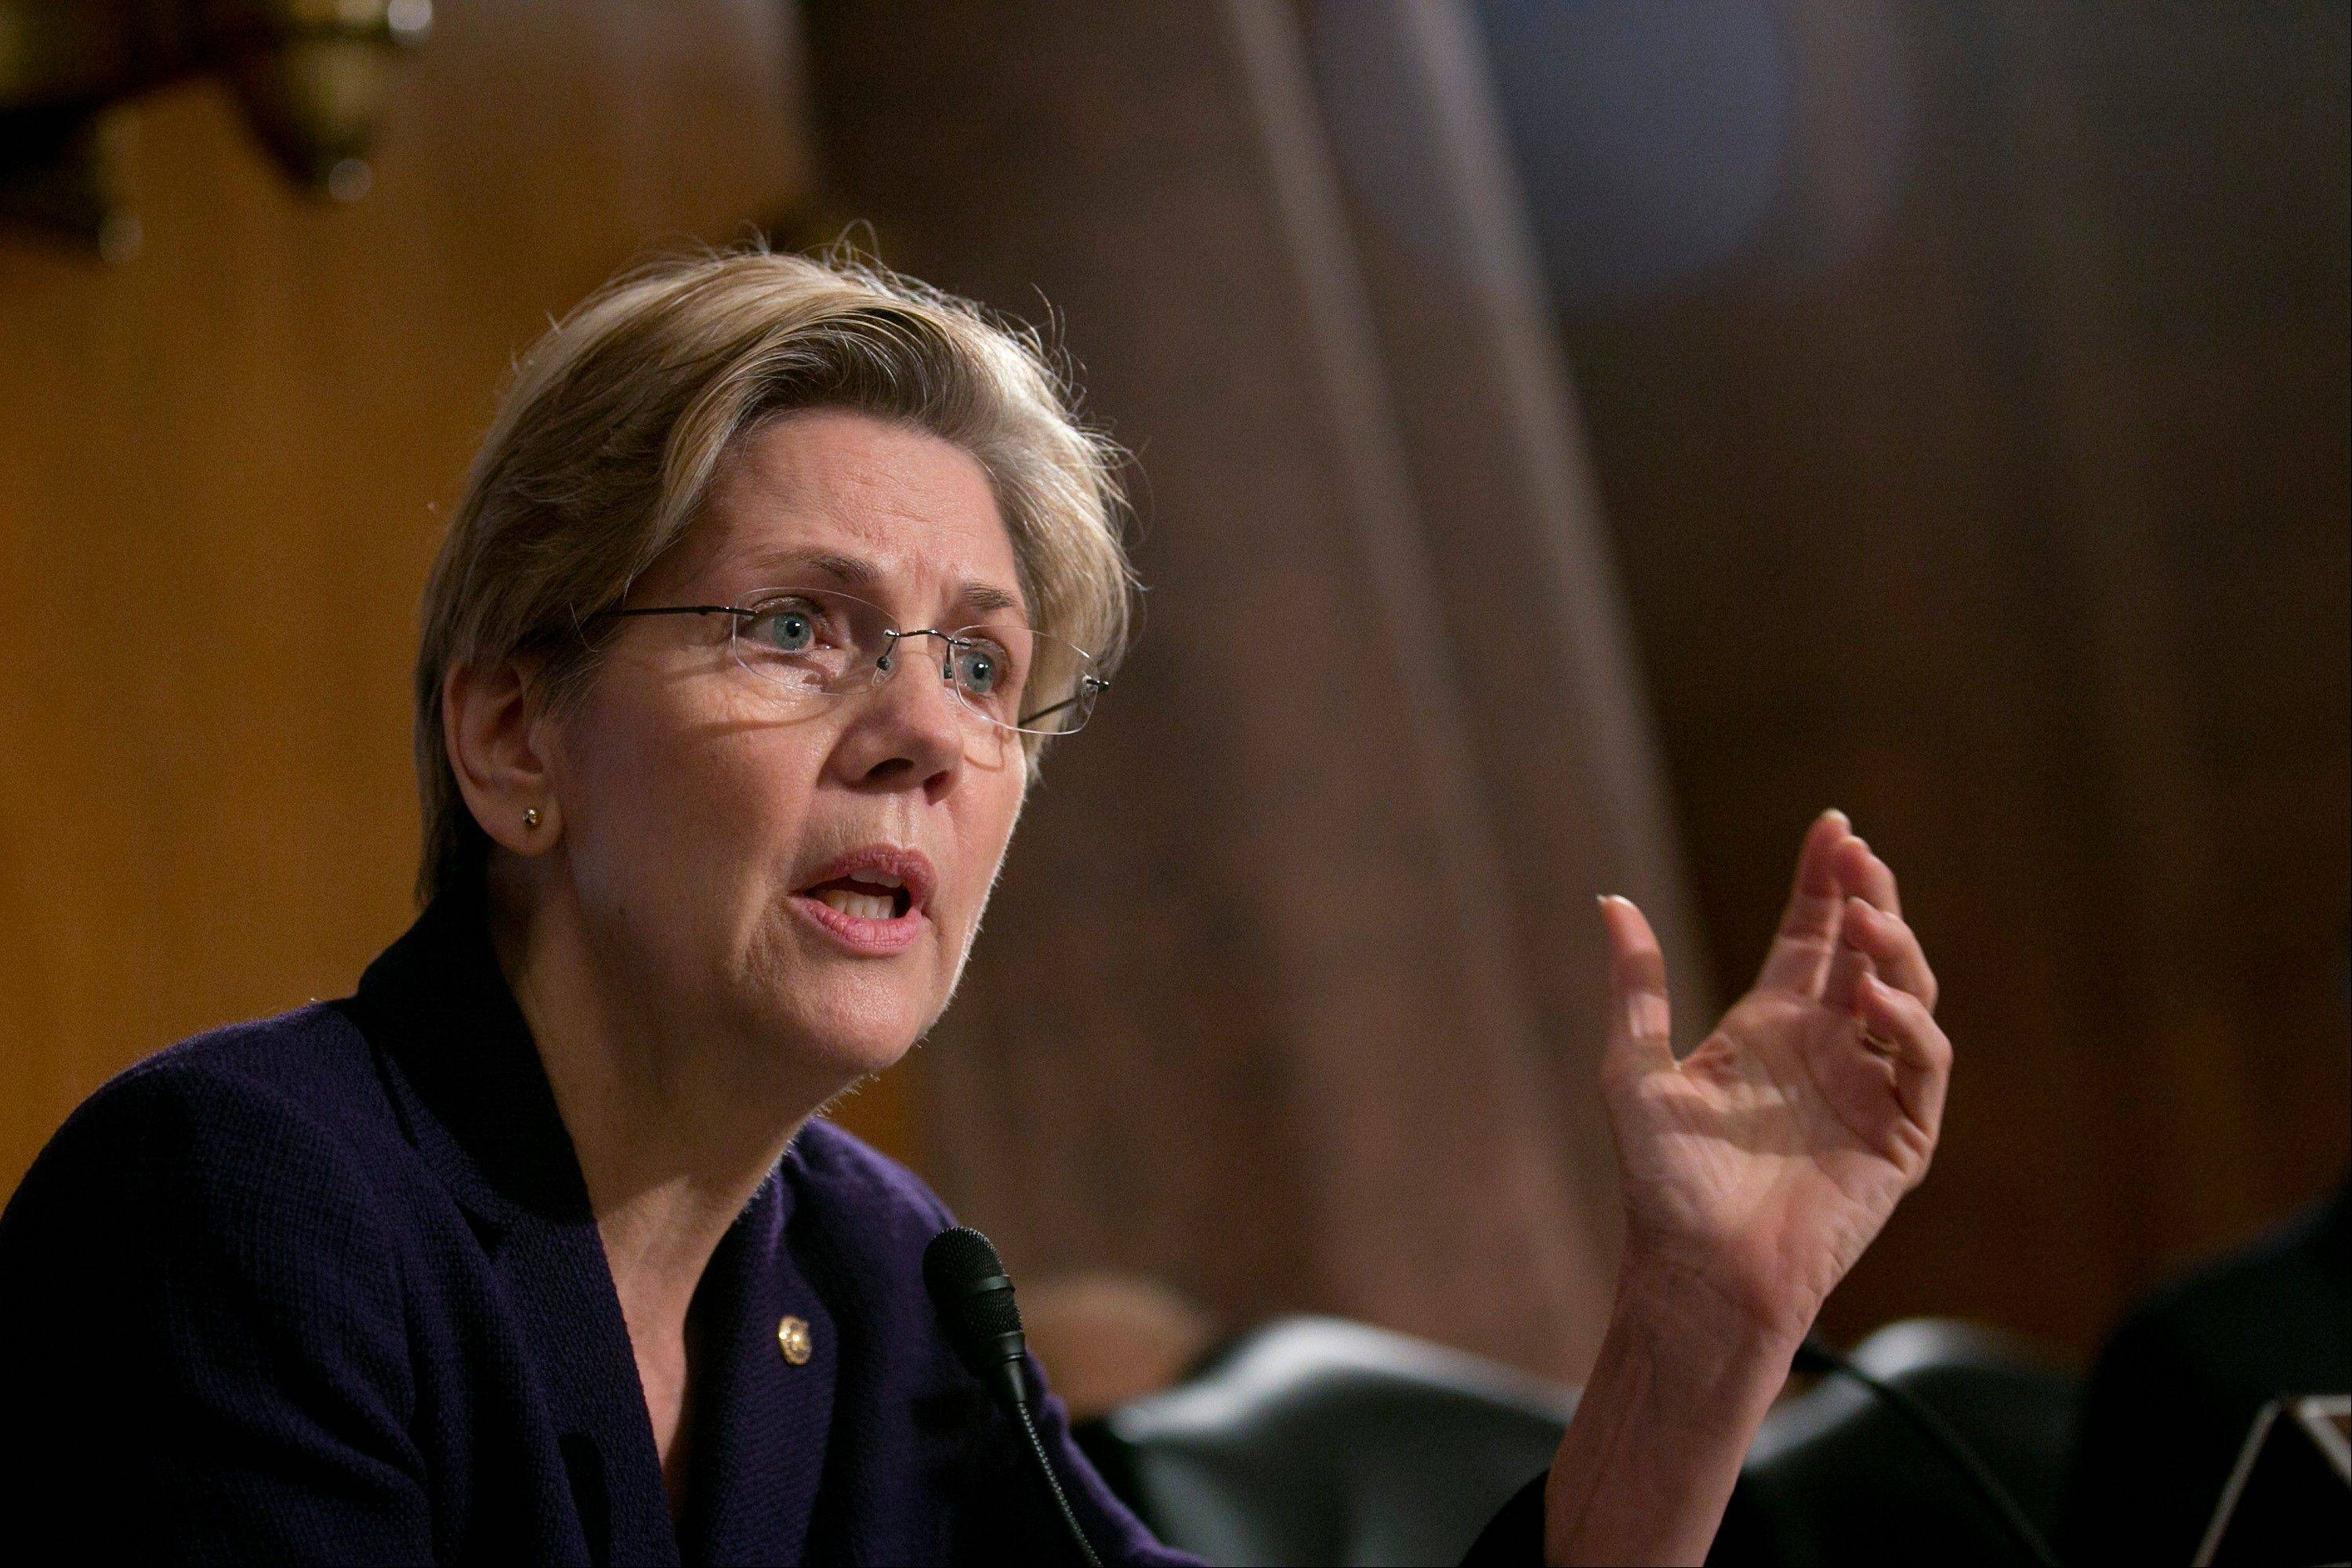 Senator Elizabeth Warren, a Democrat from Massachusetts, questions witnesses during a Senate Banking Committee hearing in Washington last March 7. Regulators are weighing changes to make it easier to eject bankers who knowingly skirt money-laundering rules.